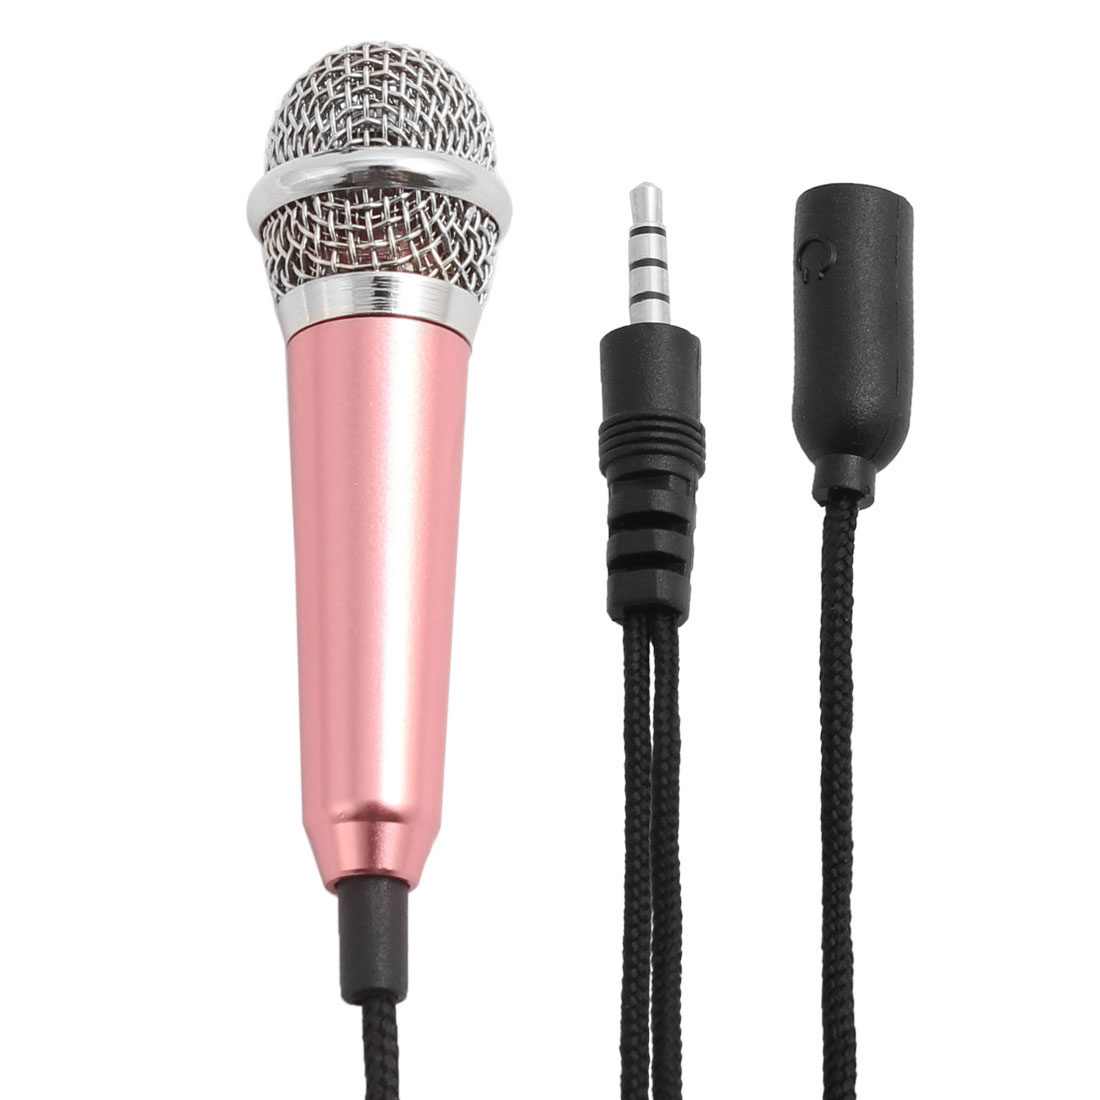 Portable 3.5mm Mini Smart Microphone Stereo Condenser Mic Pink for Phone w Base